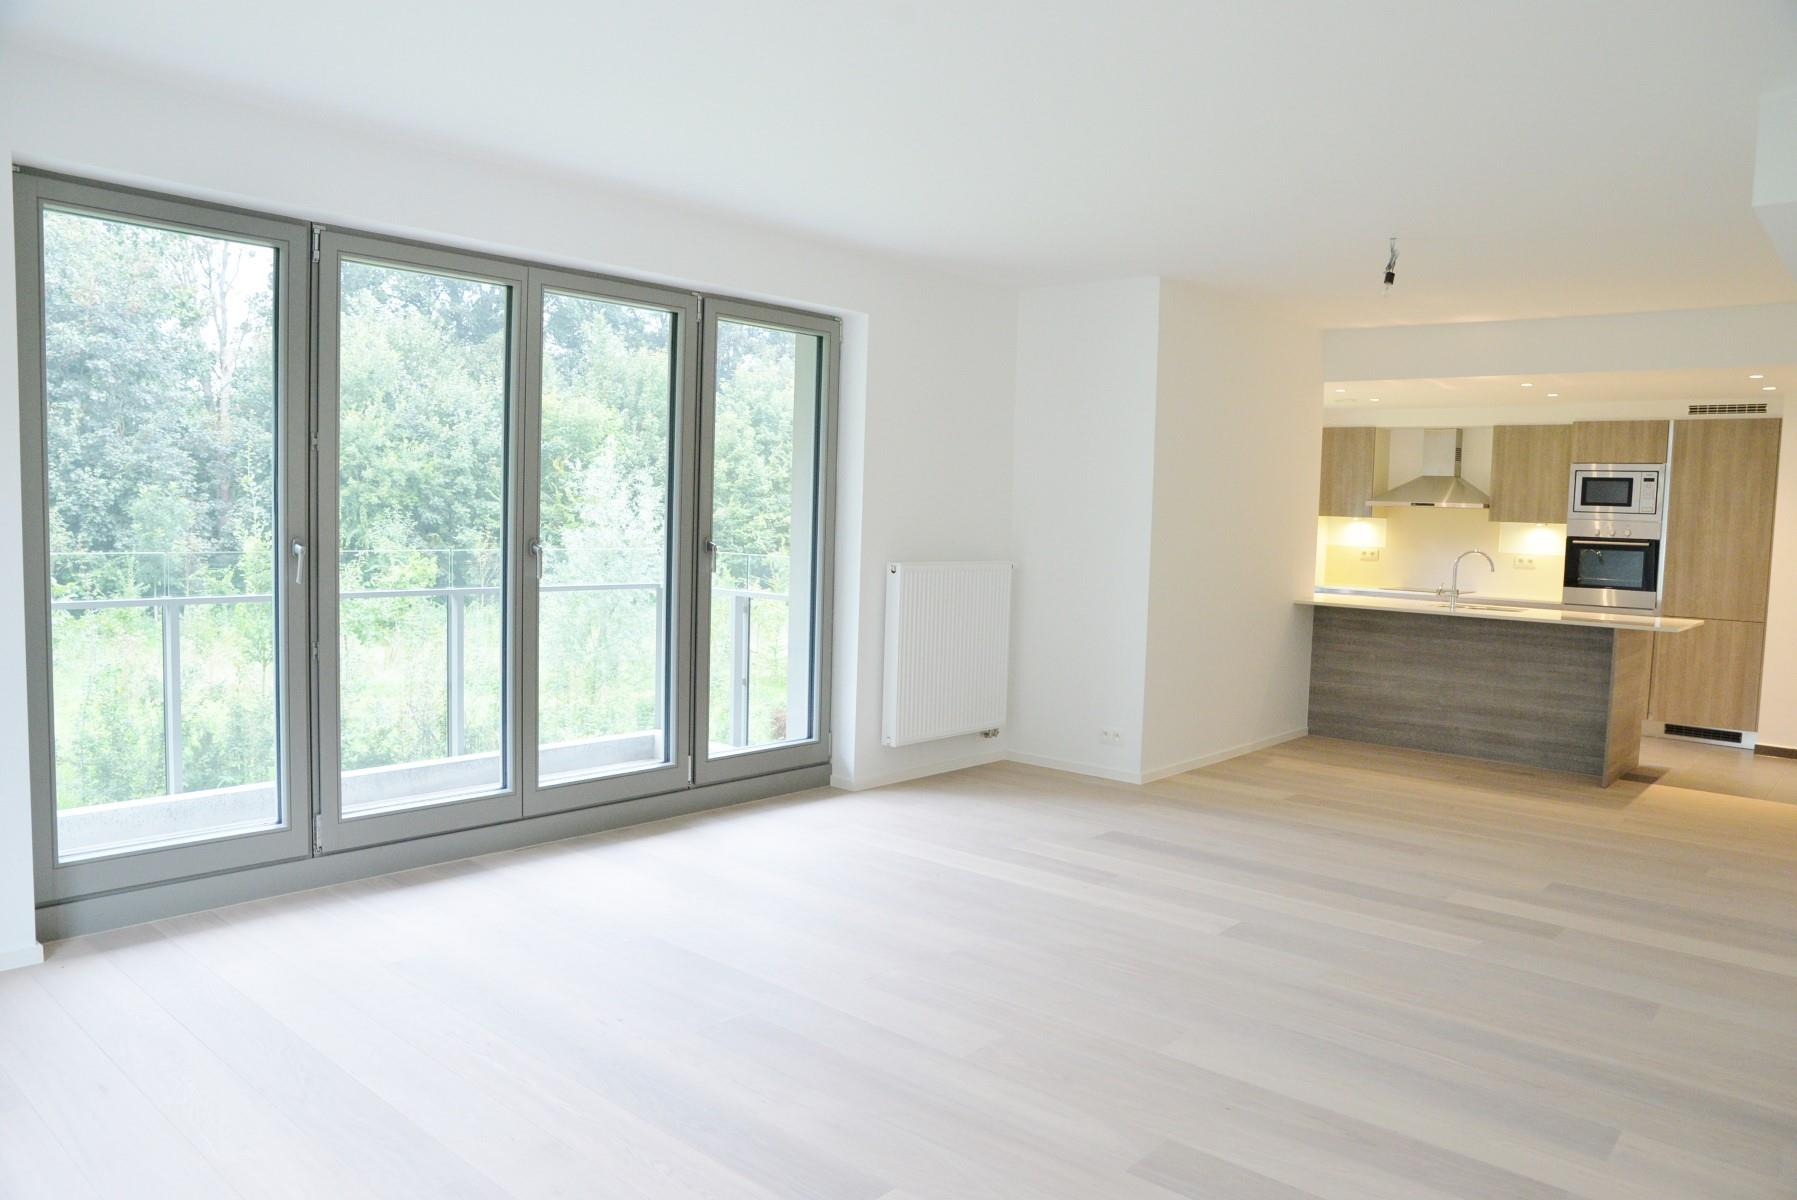 Appartement exceptionnel - Uccle - #3757191-1